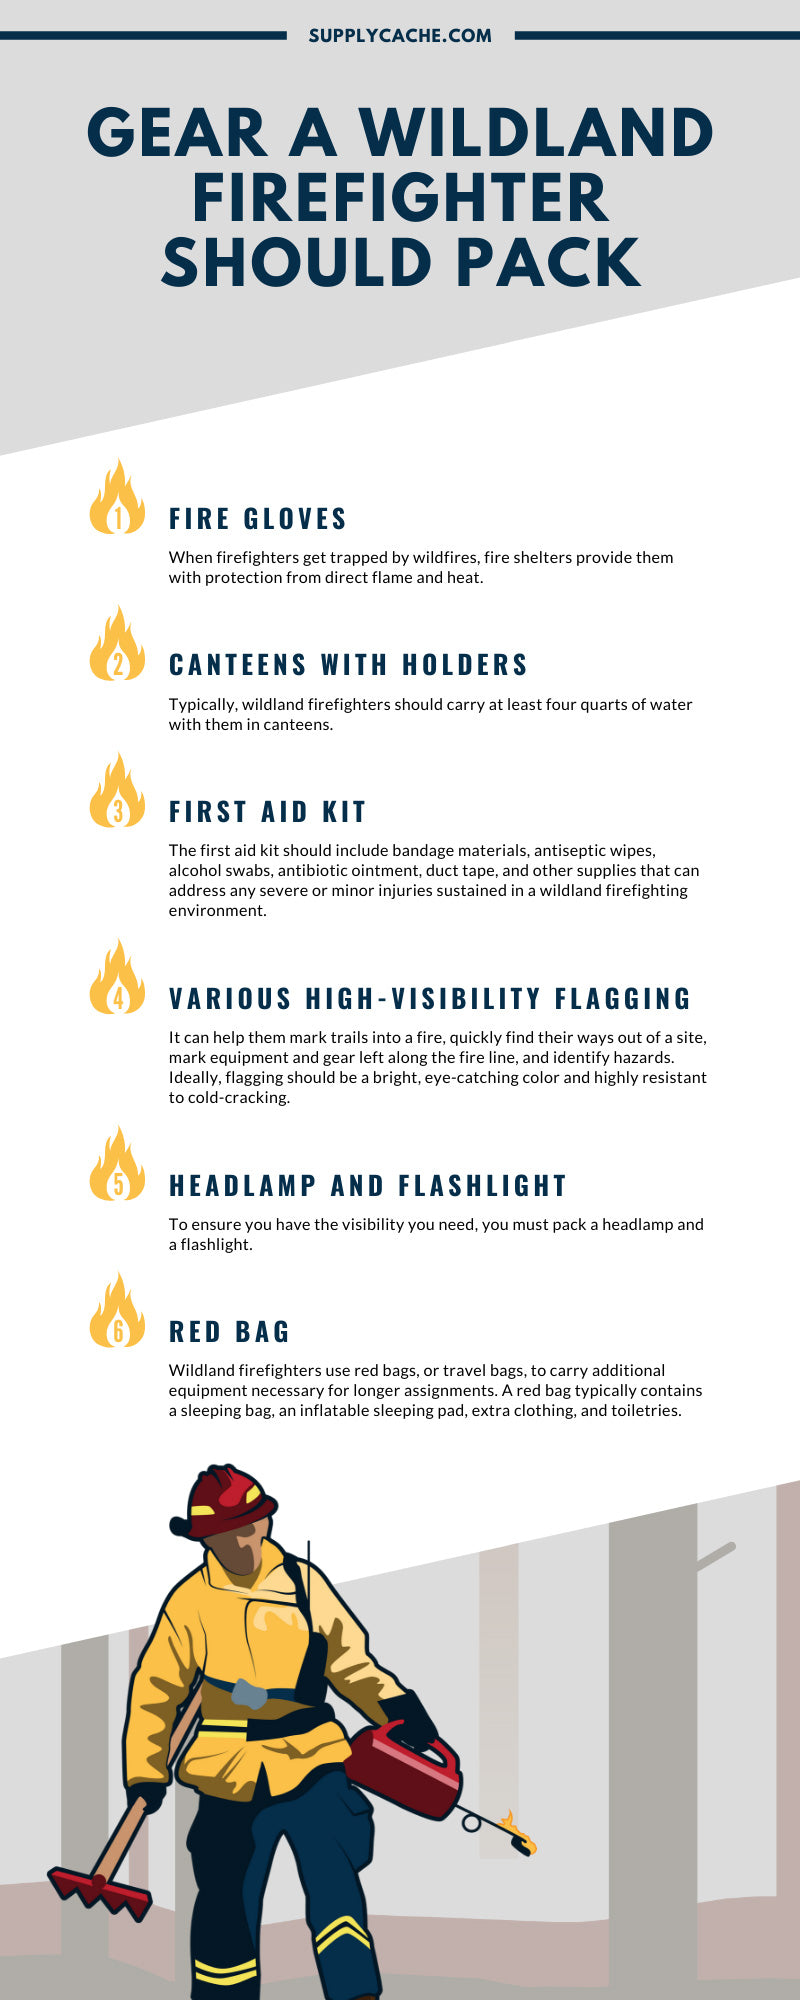 Gear a Wildland Firefighter Should Pack